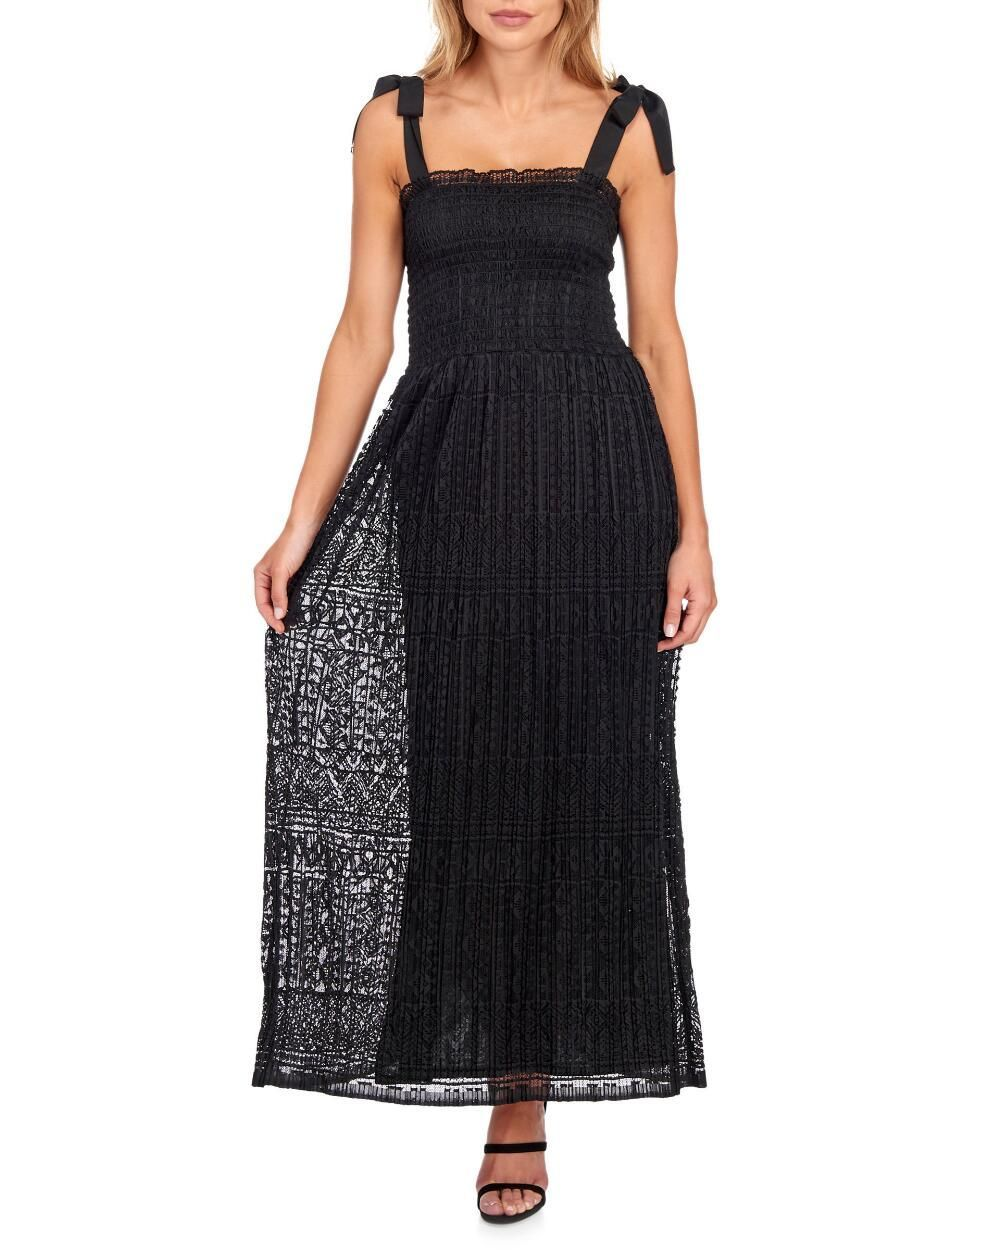 Sleeveless Tie Strap Lace Maxi Dress Occasion Maxi Dresses Lace Maxi Dress Style Maxi Dress [ 1250 x 1000 Pixel ]